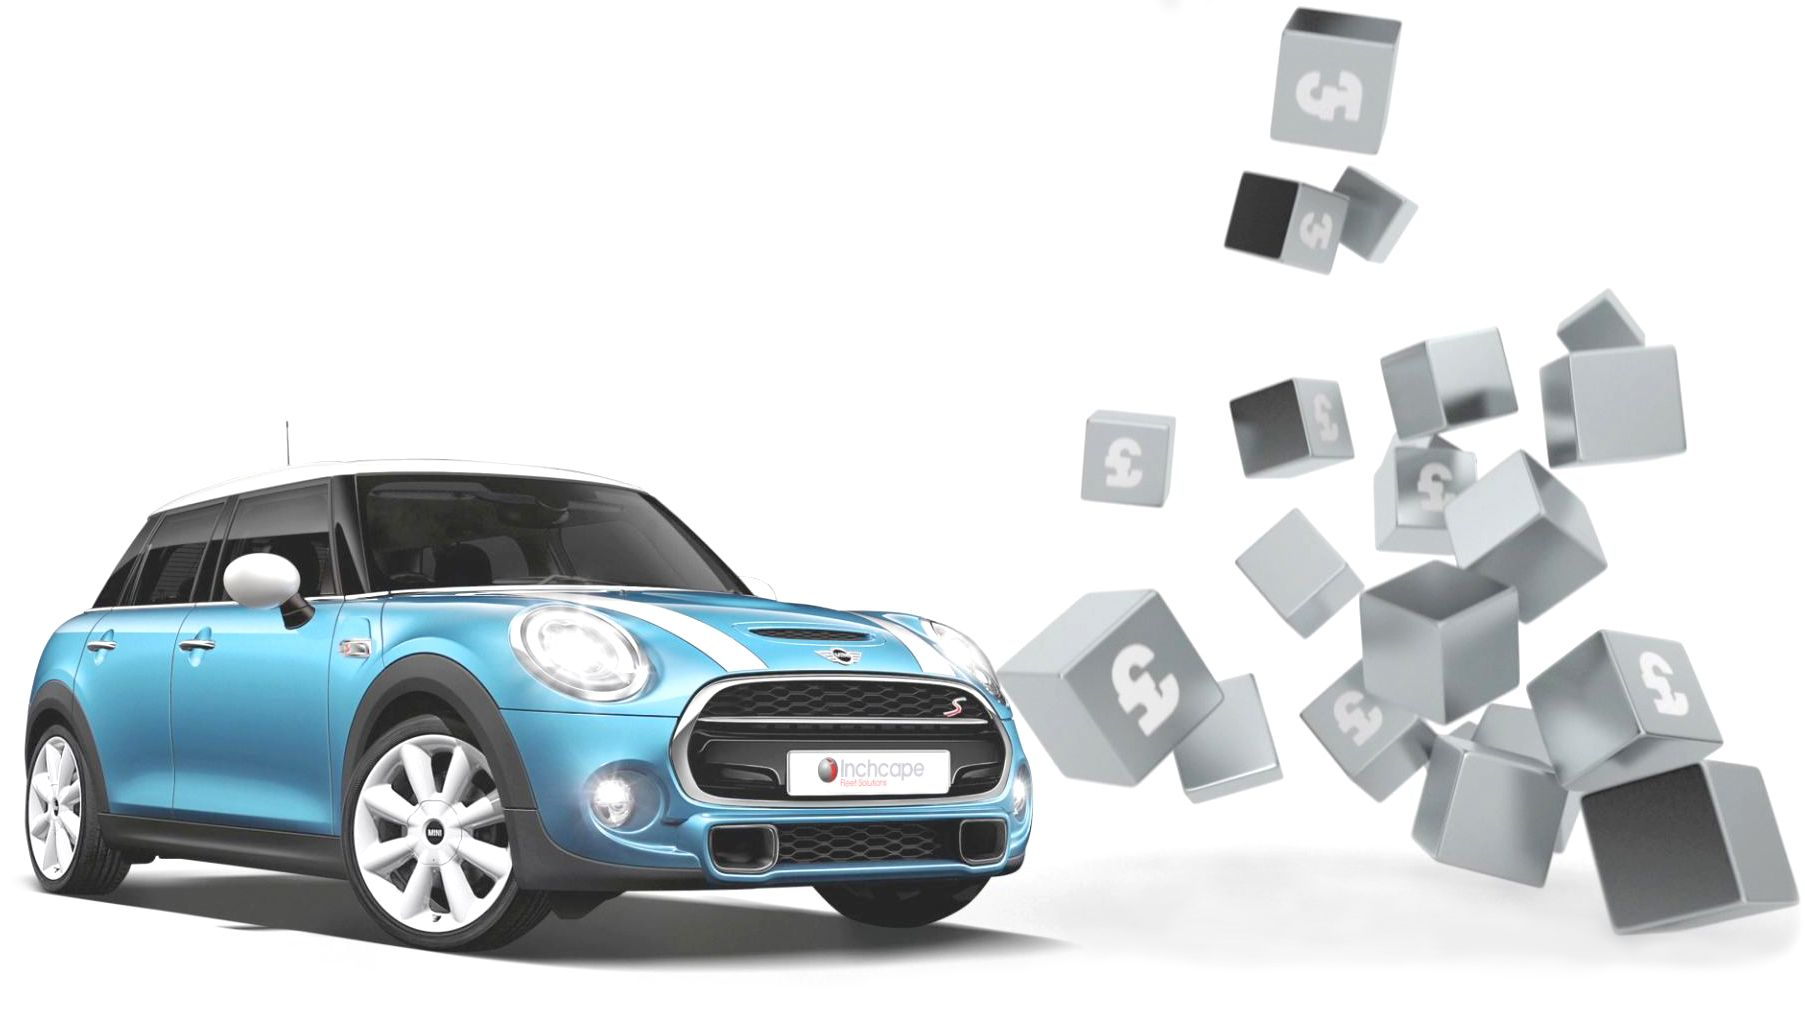 A photo-realistic blue Mini with CGI cubes falling behind